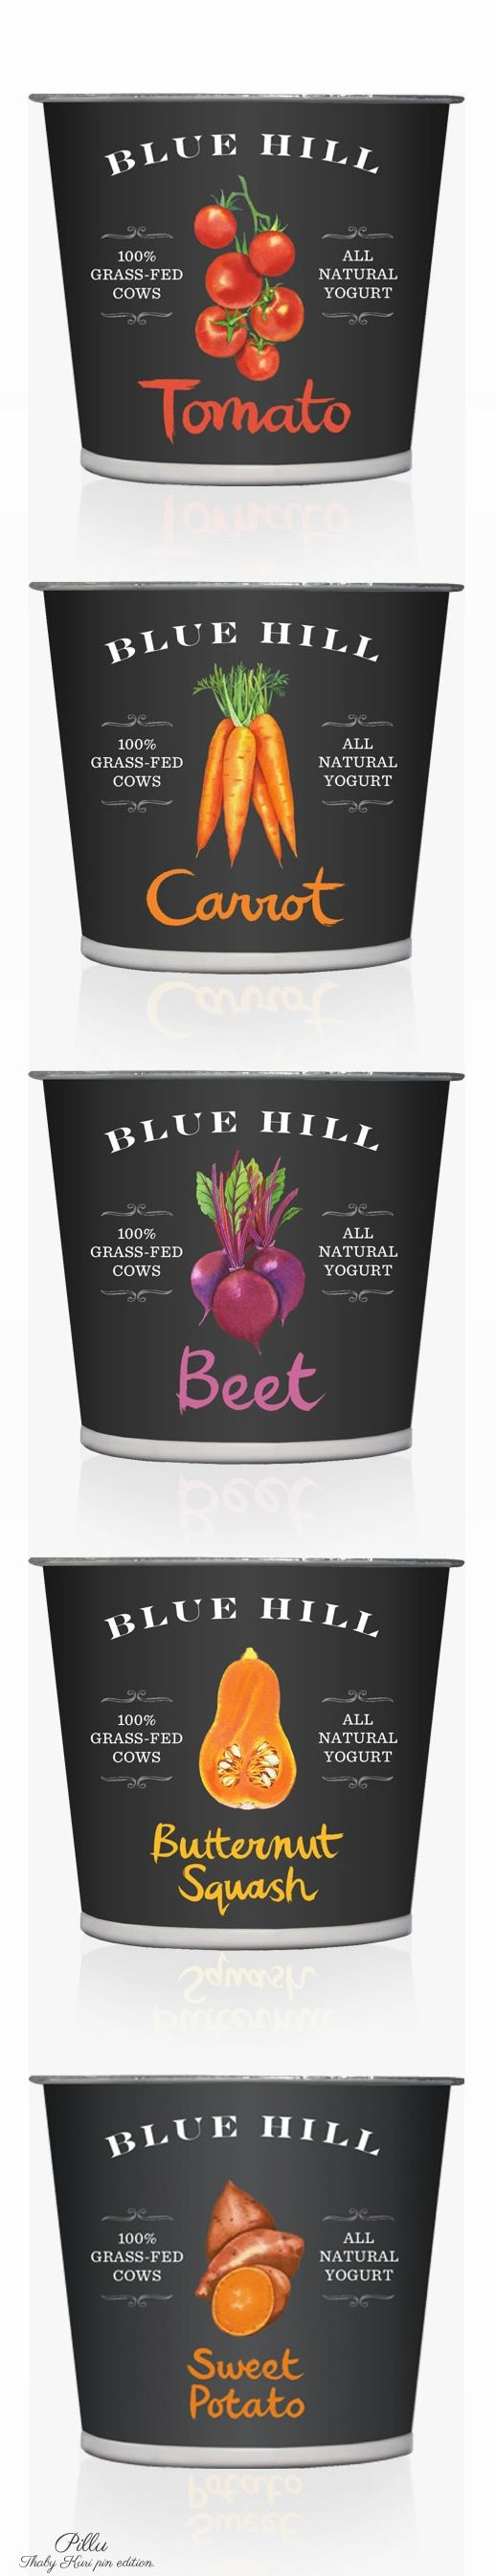 Blue Hill Yogurt  #packaging #yogurt #beautifulfood